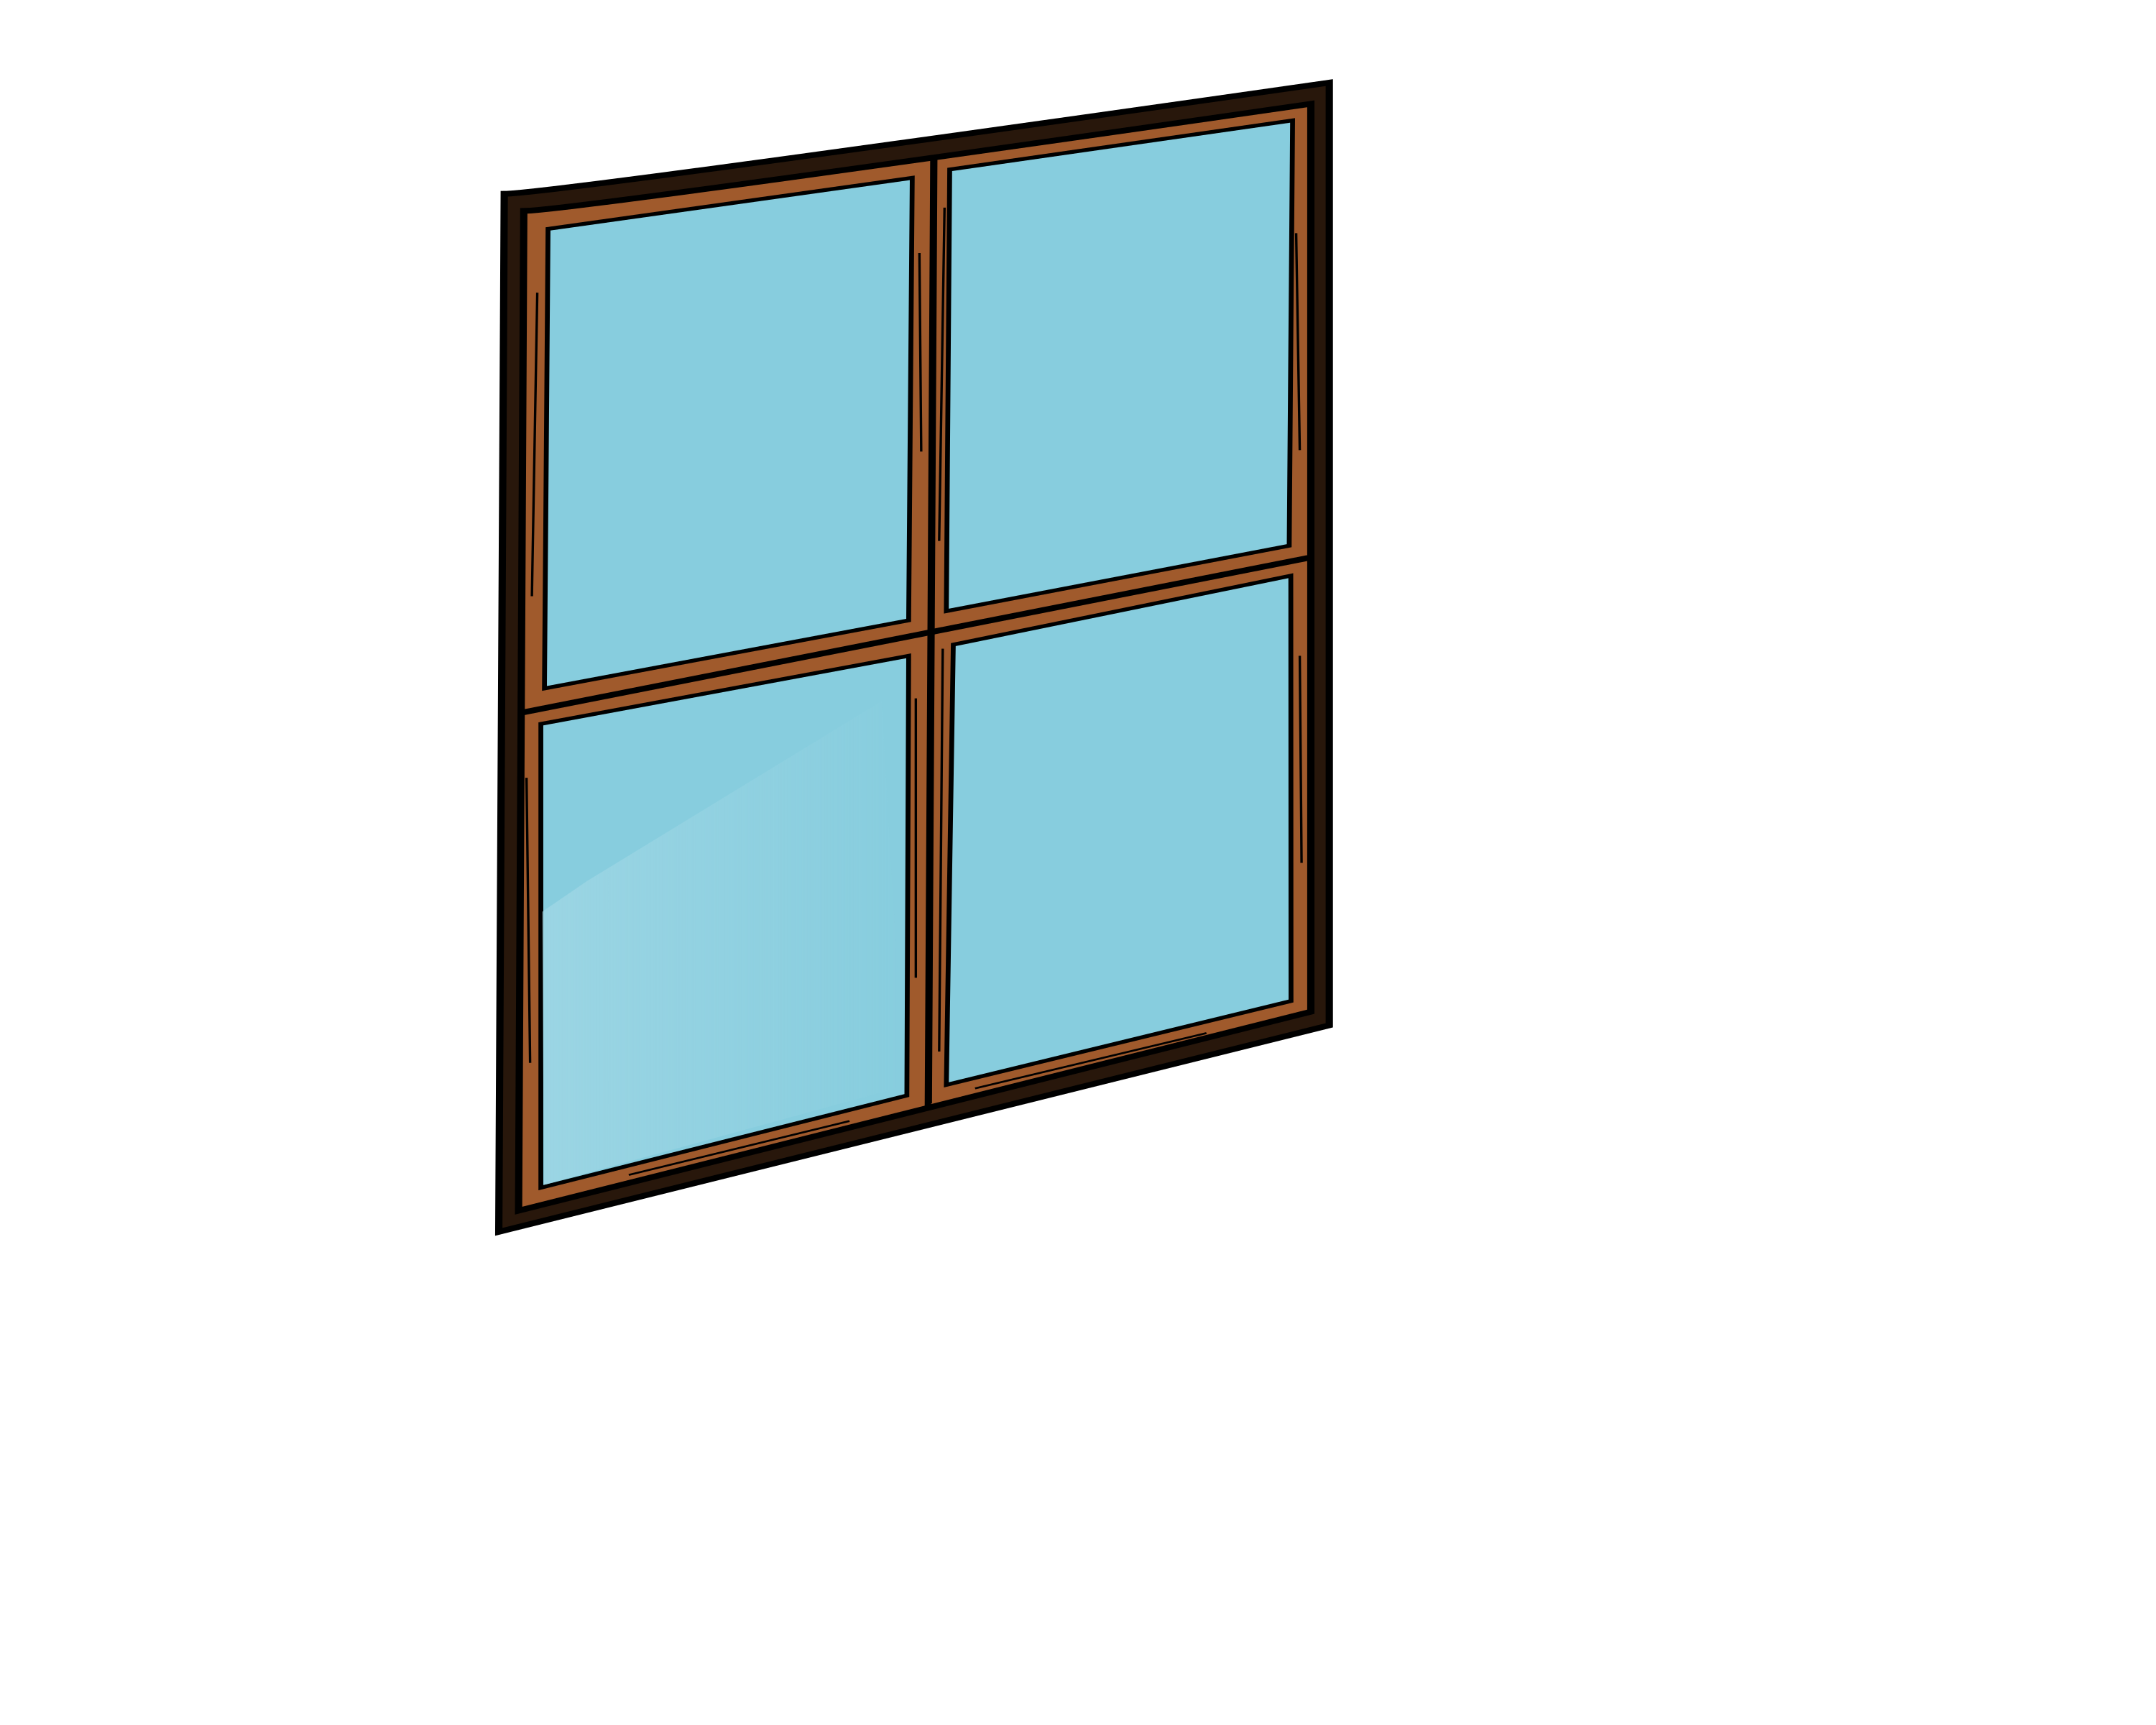 Big image png. Furniture clipart simple window